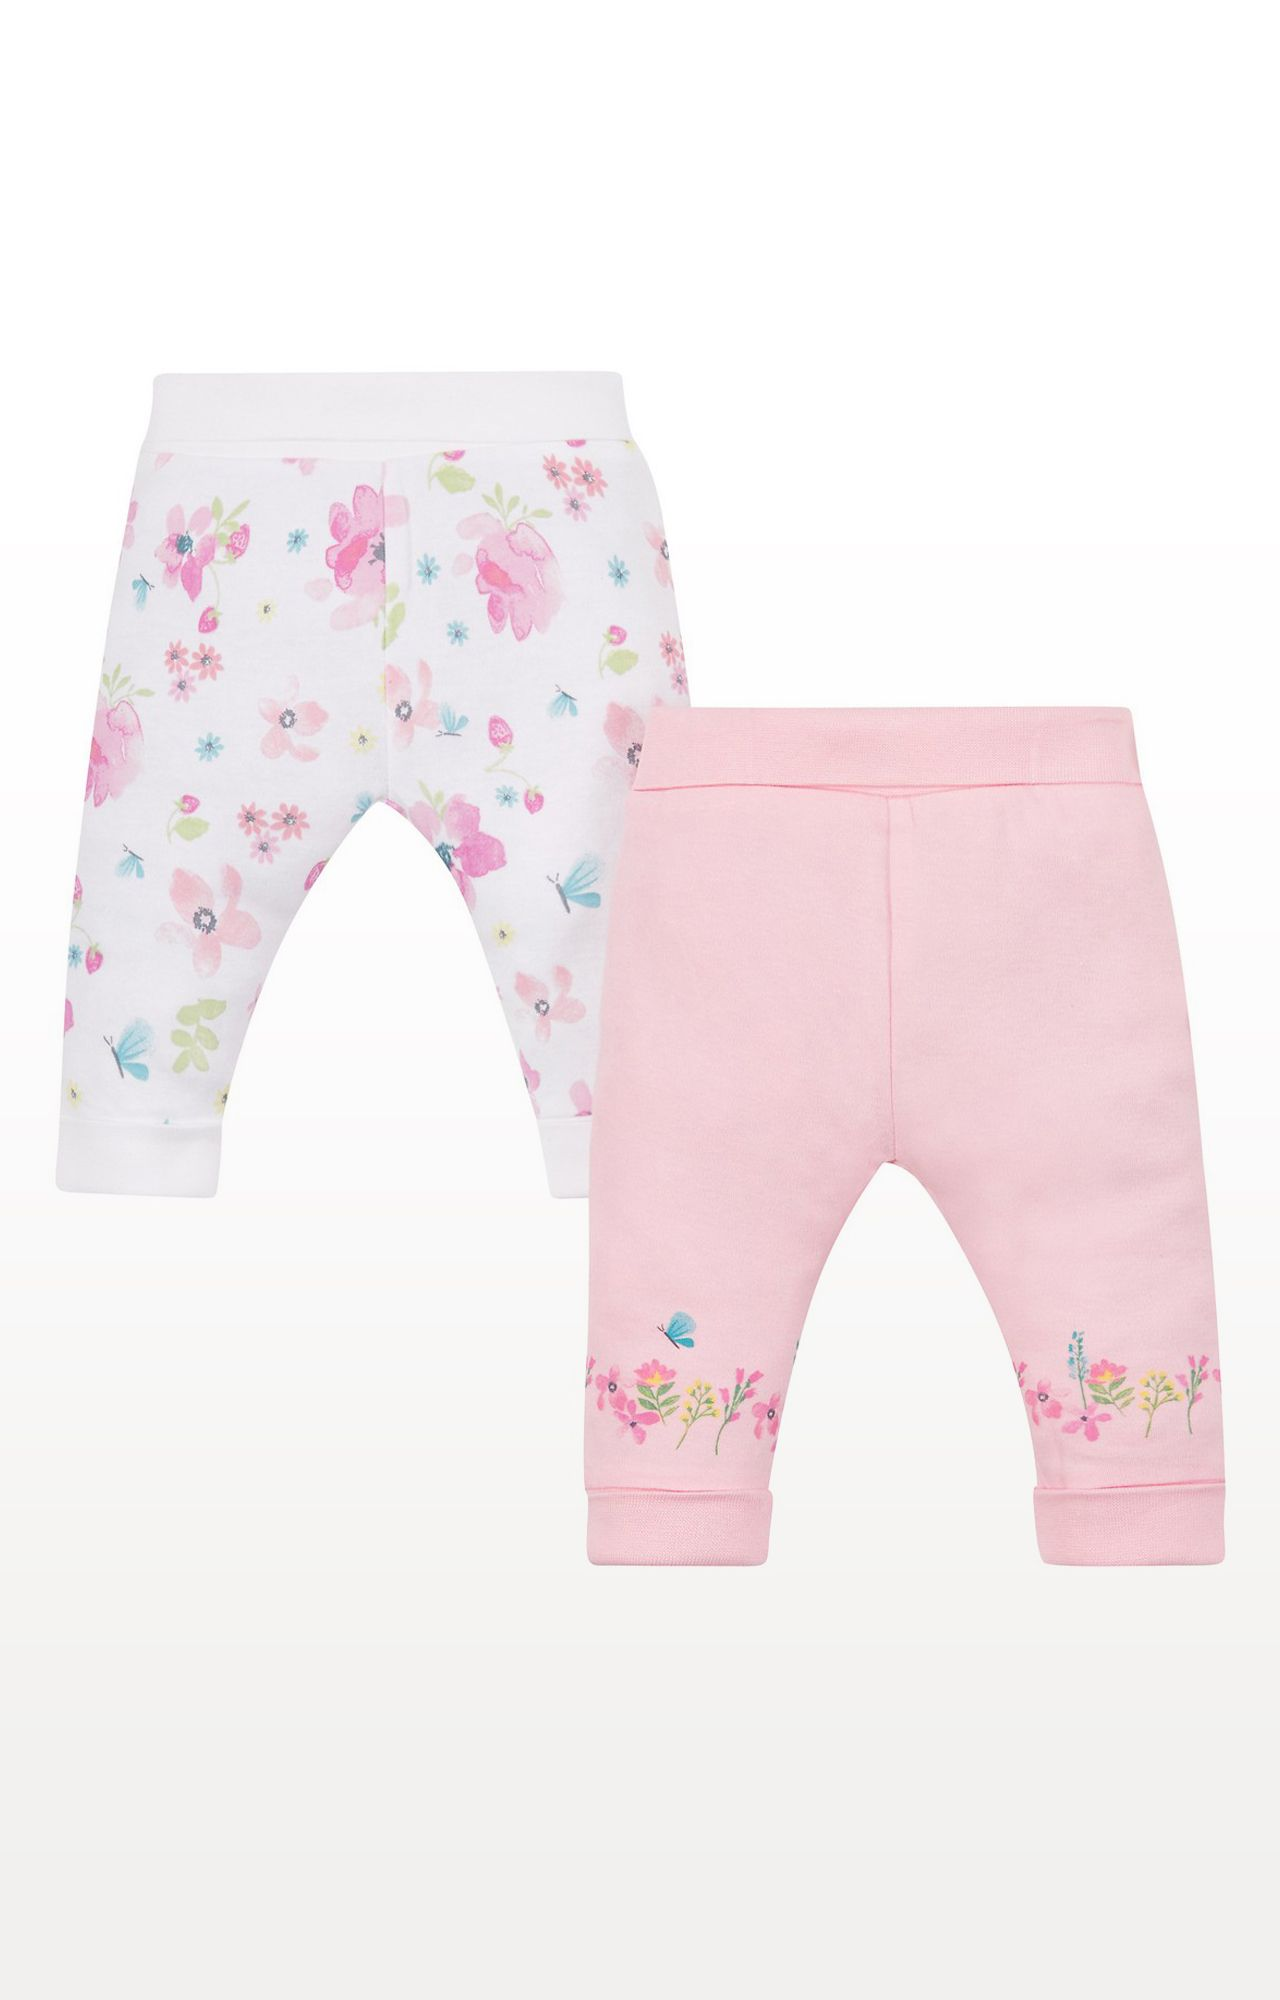 Mothercare | Pink and White Floral Joggers - Pack of 2